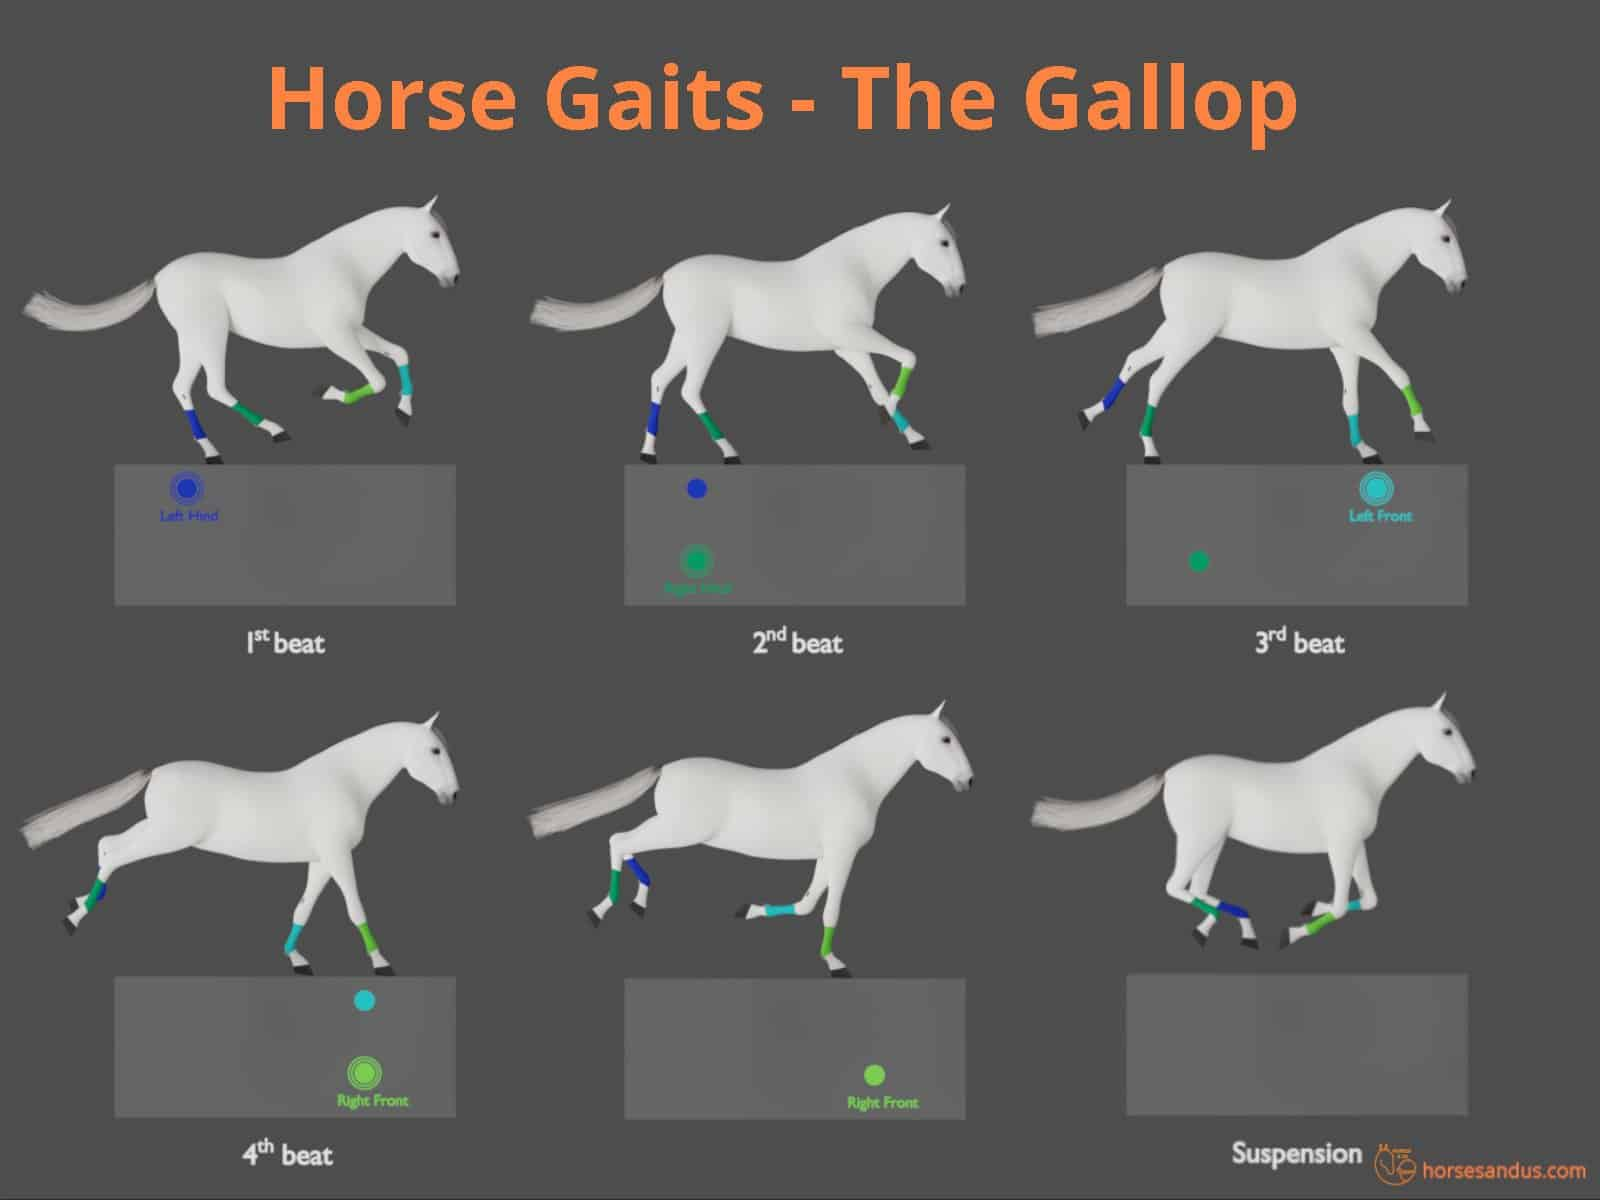 Horse gaits - the gallop cycle - diagram